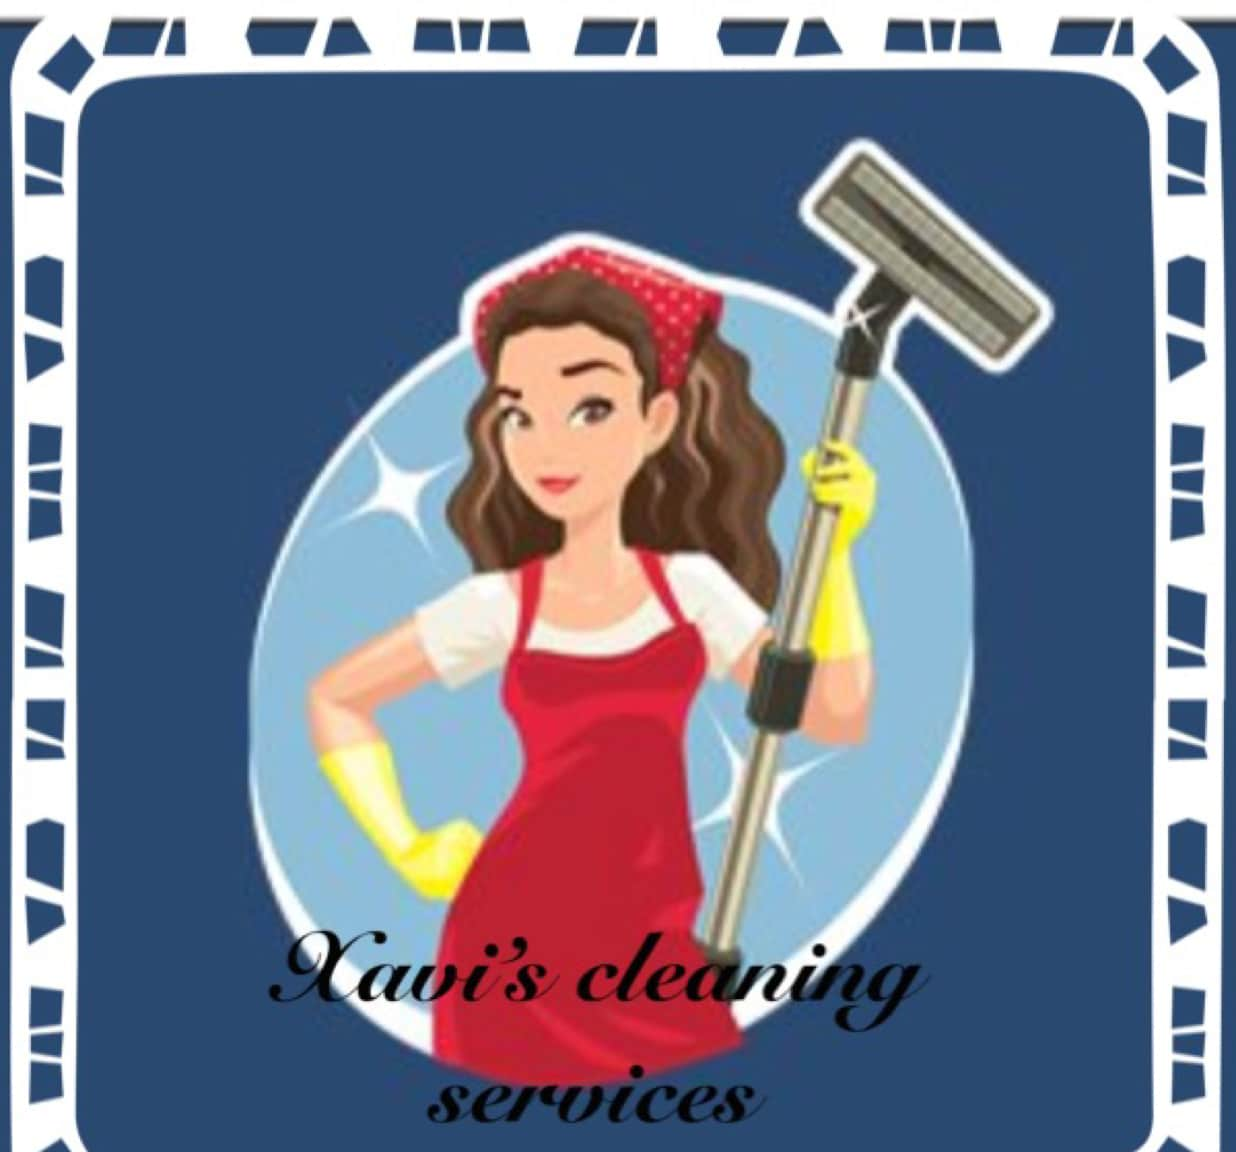 Xavis Cleaning Services